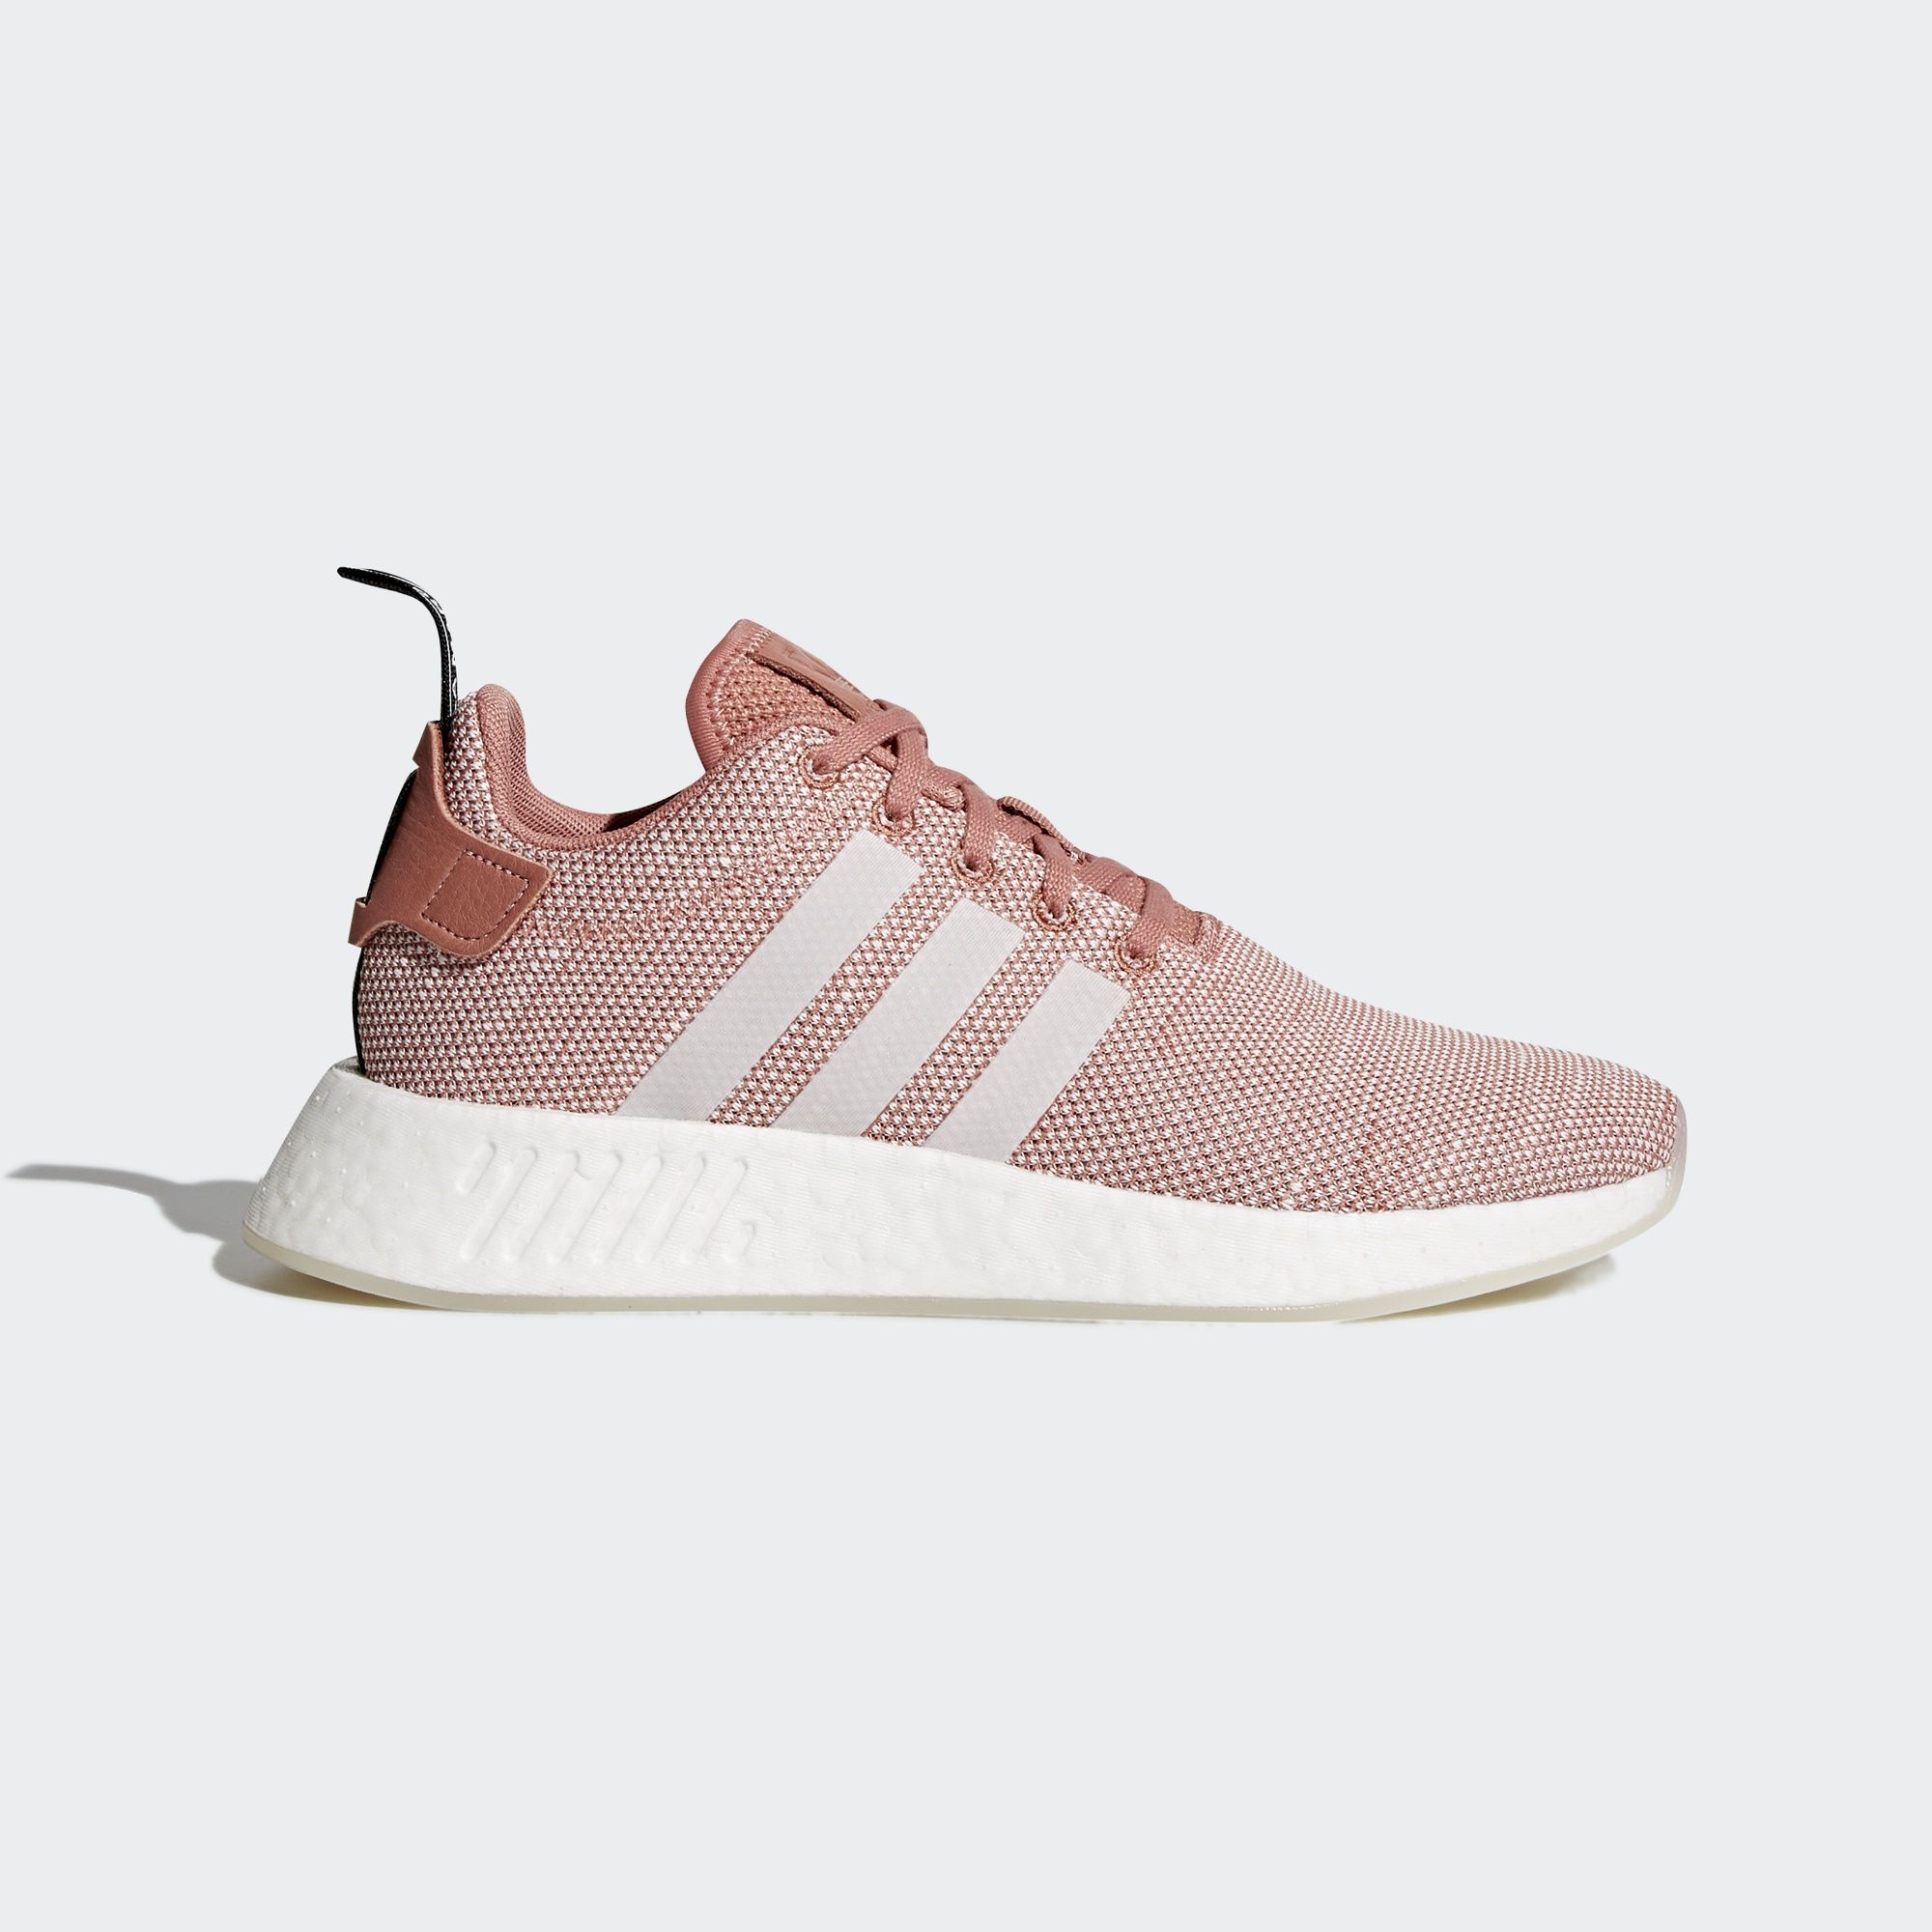 adidas NMD_R2 Shoes - Womens Shoes